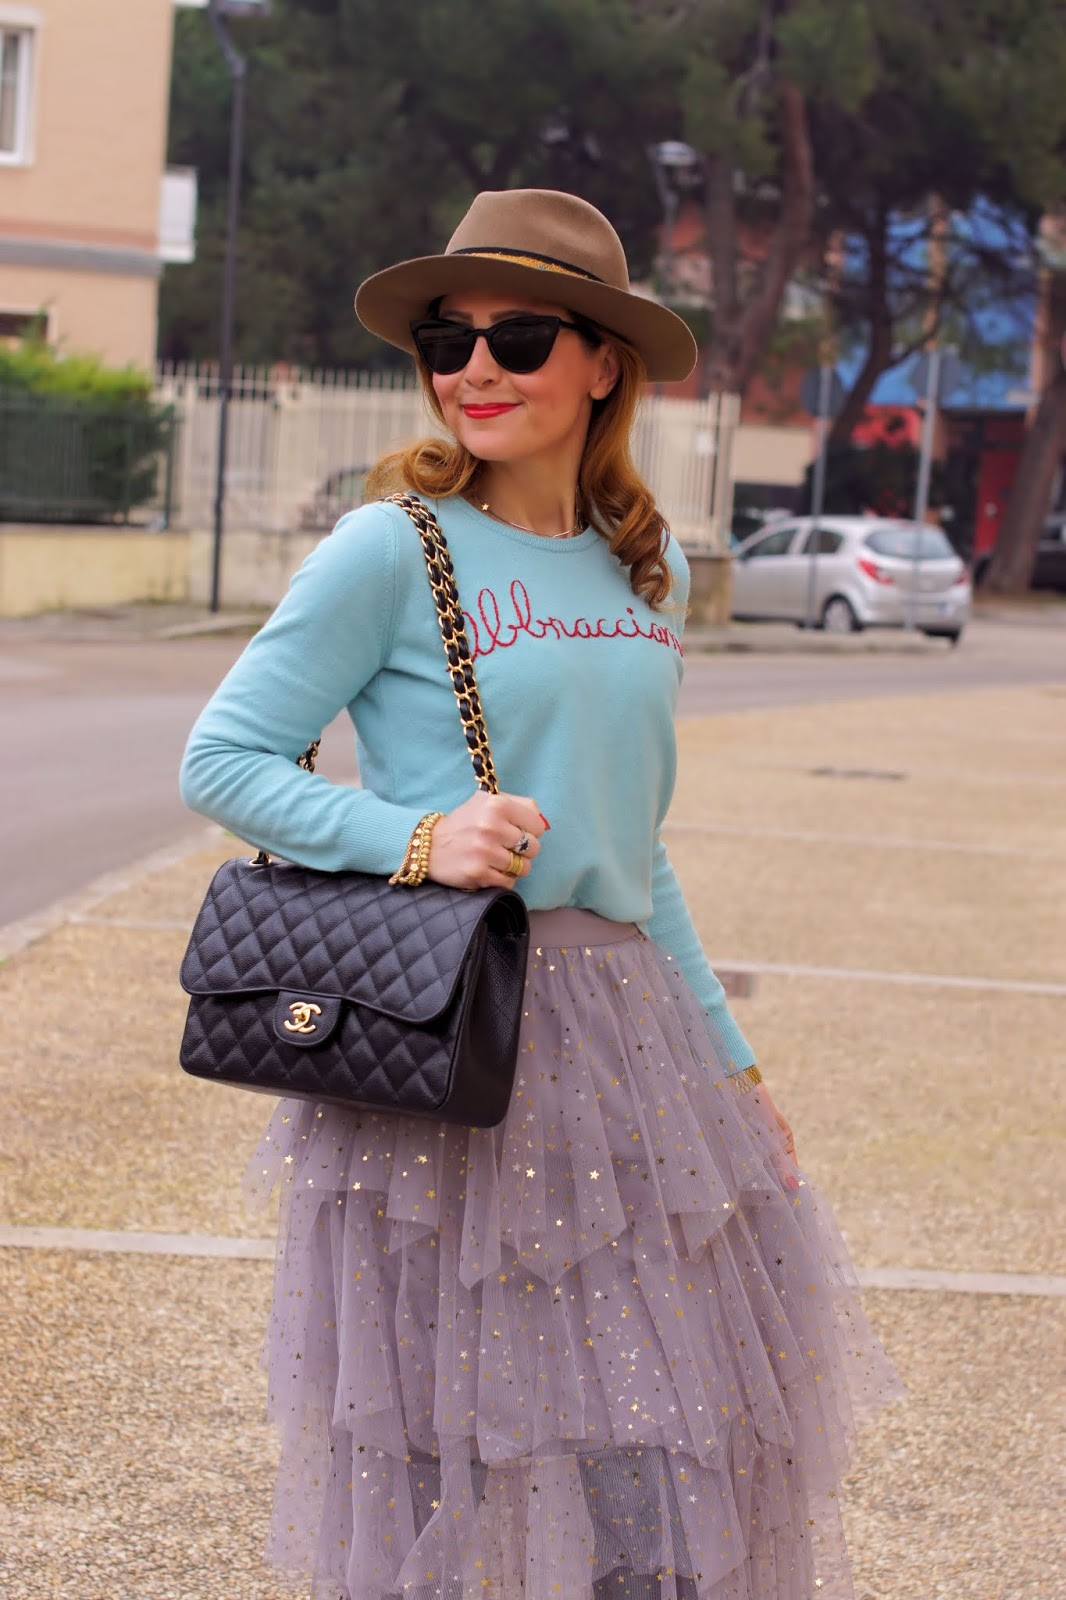 Tulle skirt and Combat boots outfit idea on Fashion and Cookies fashion blog, fashion blogger style